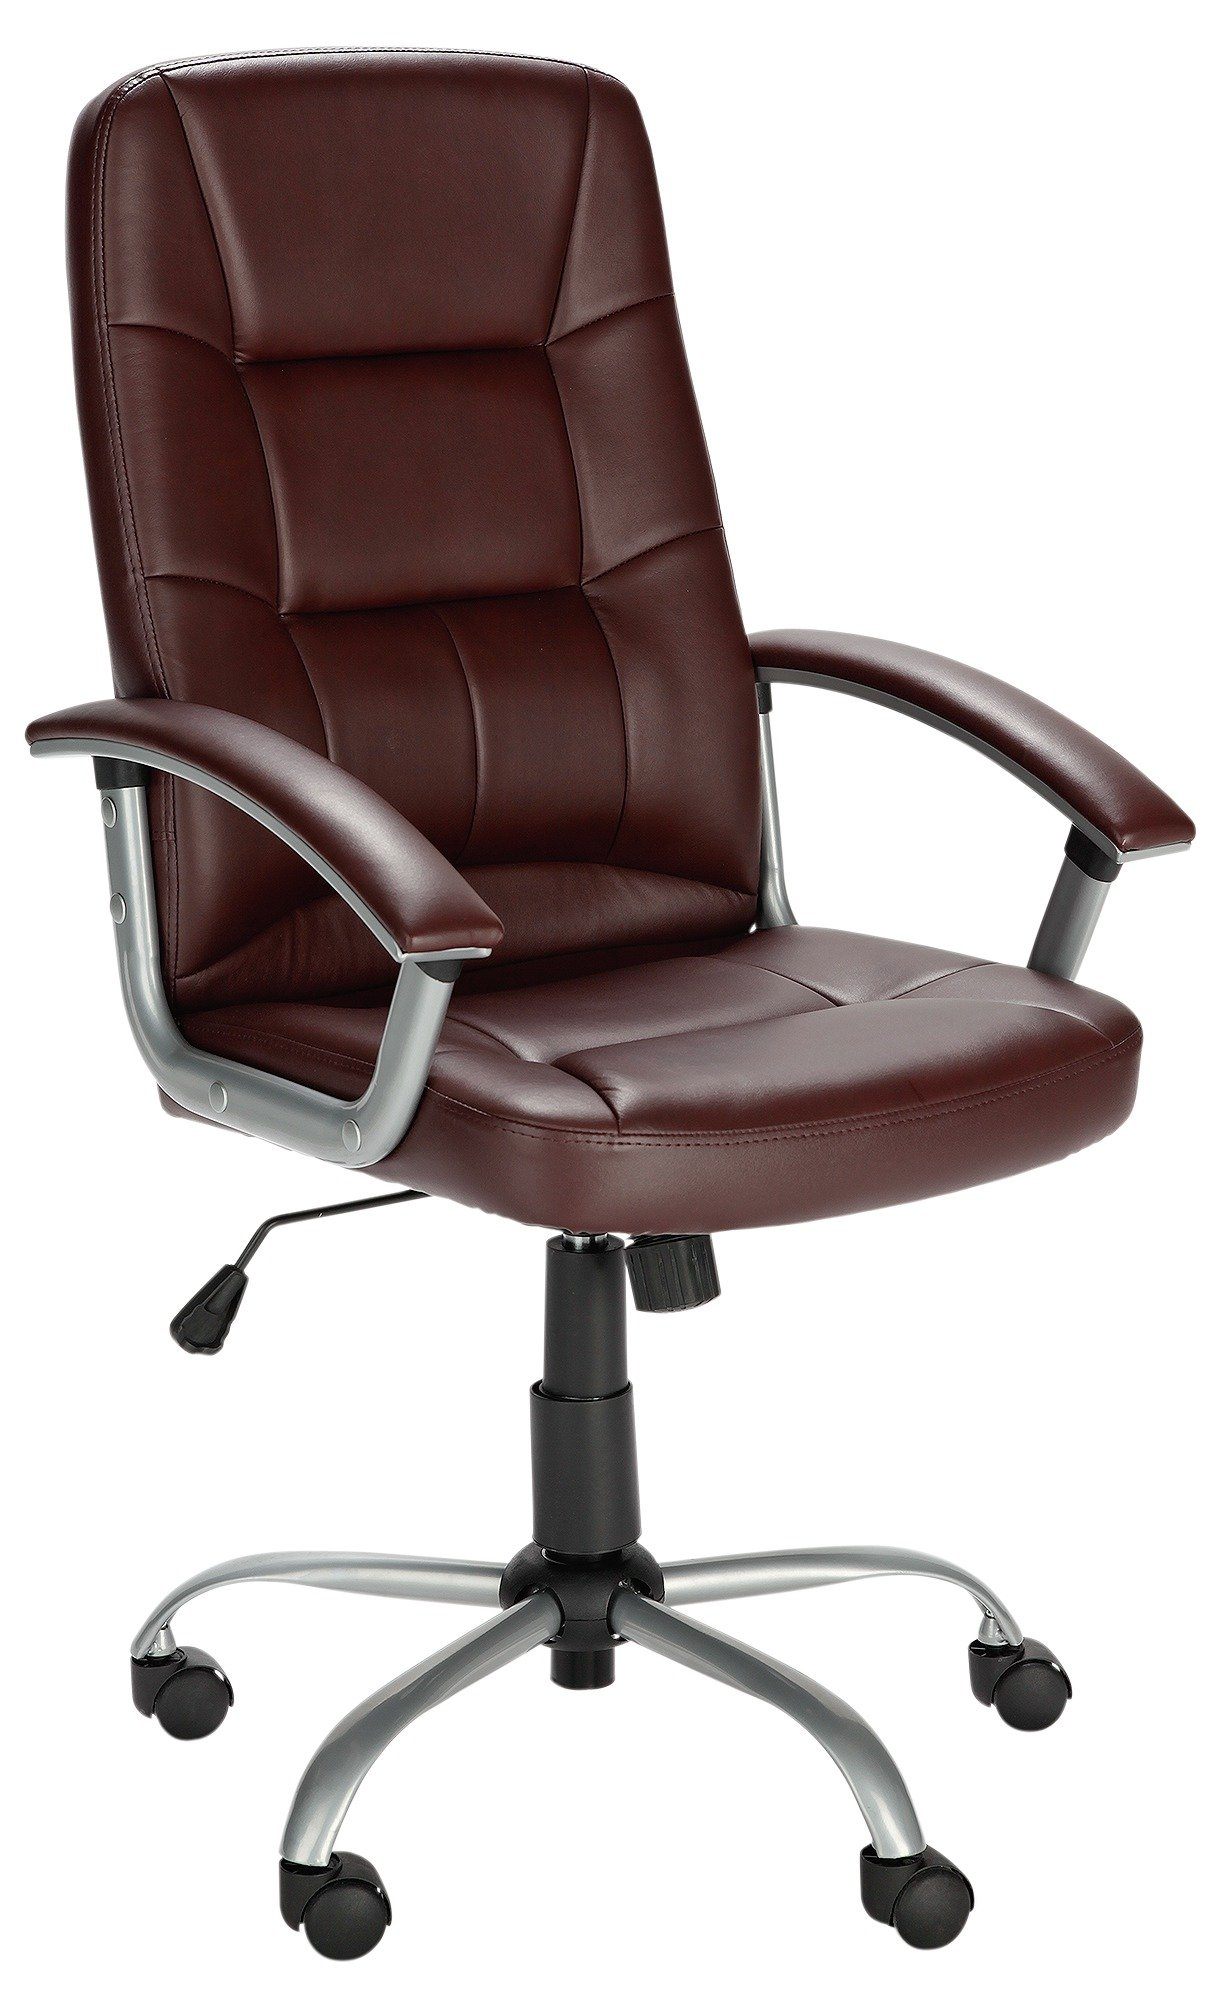 argos computer chair deals